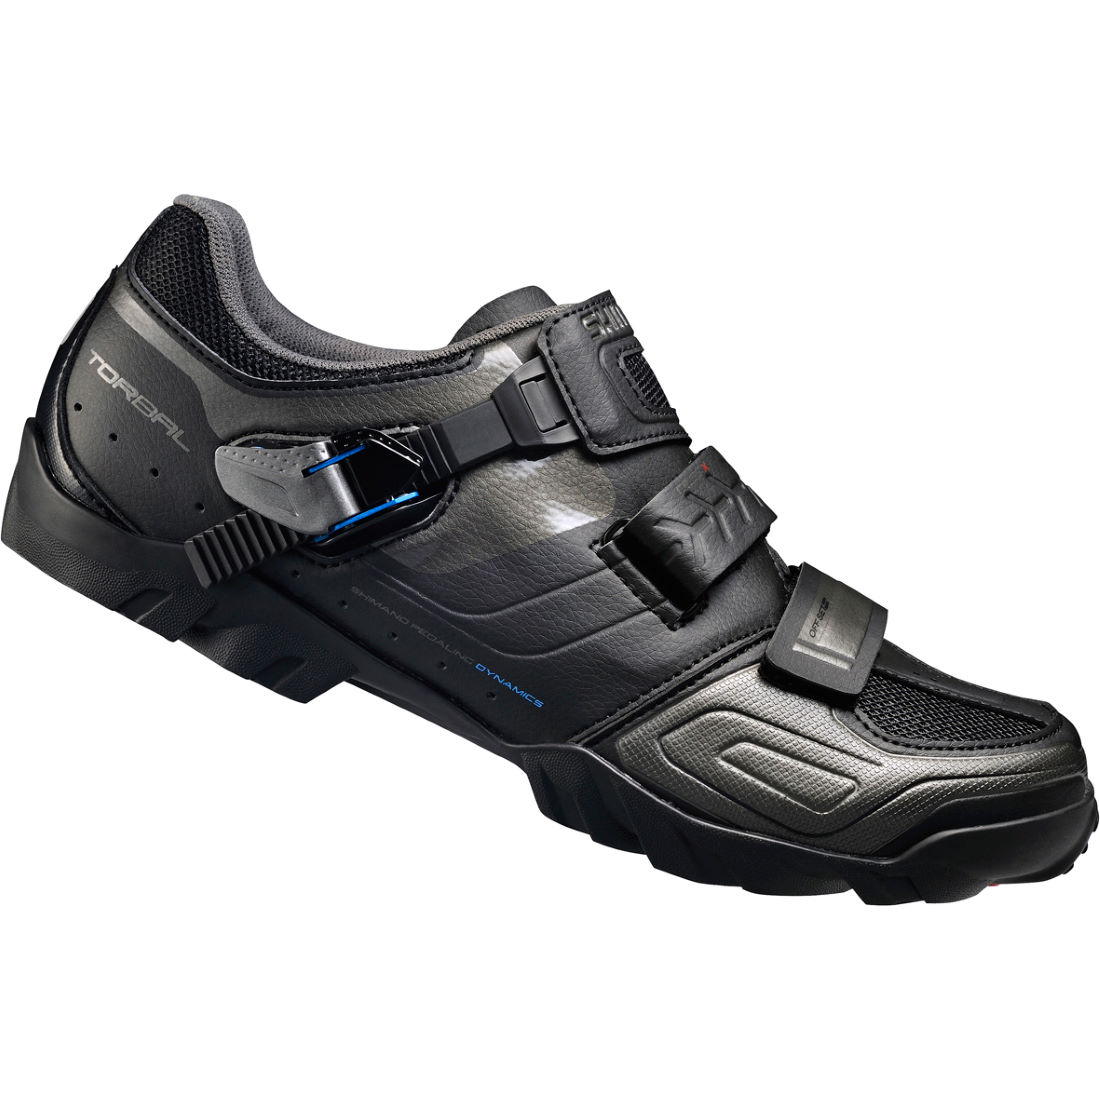 Shimano Mtb Shoes Size  Wide Fit